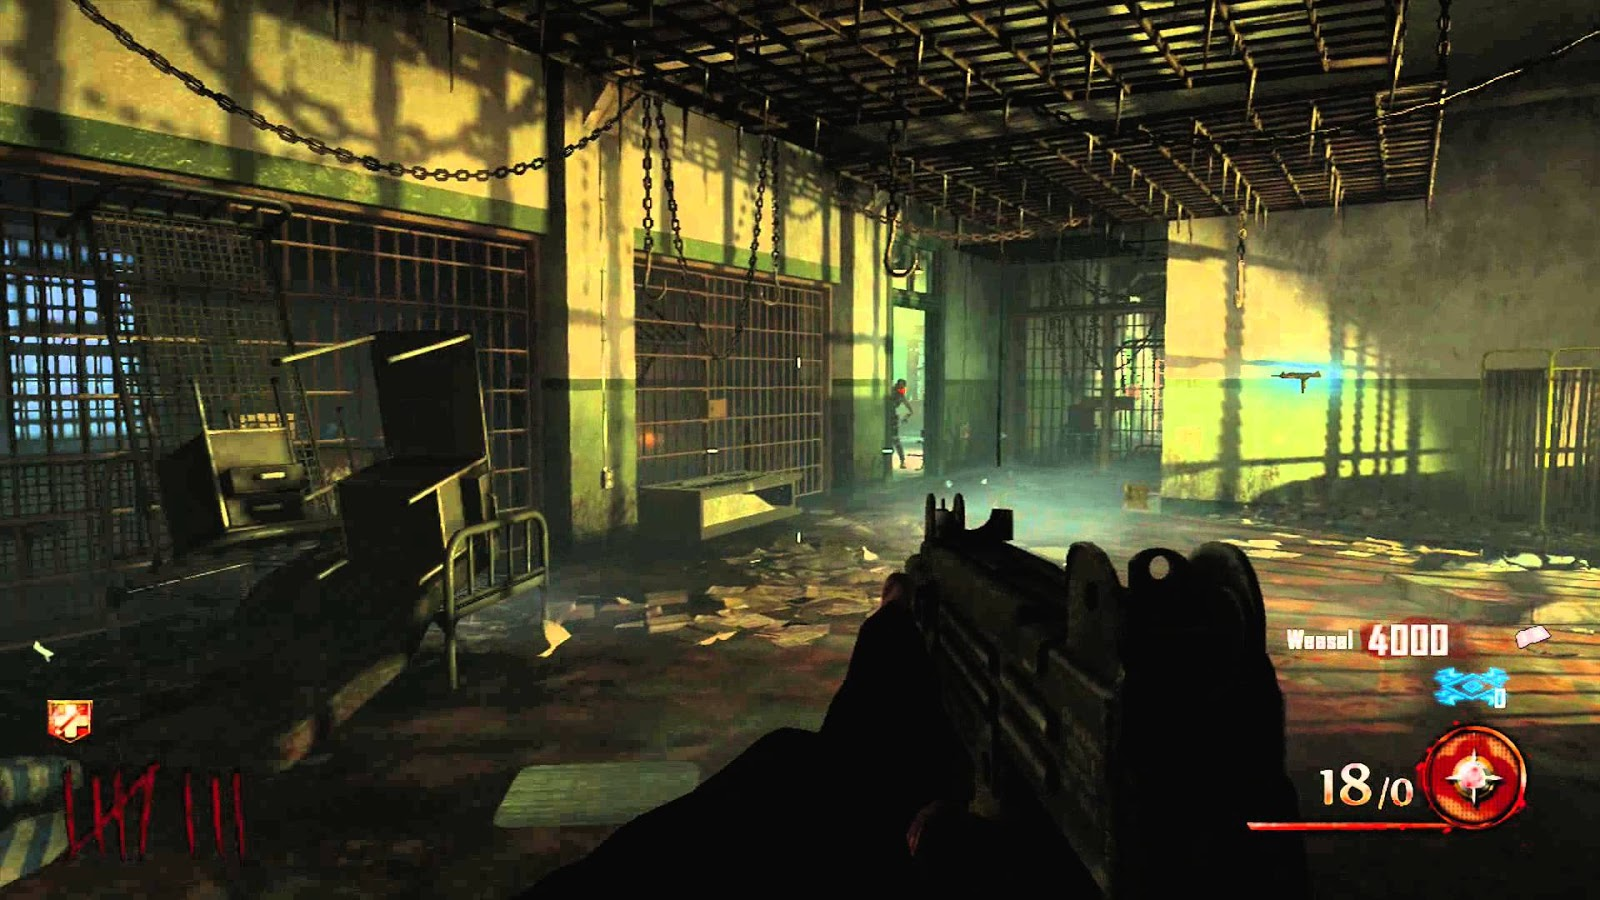 Zombified call of duty zombie map layouts secrets - Mob of the dead pictures ...